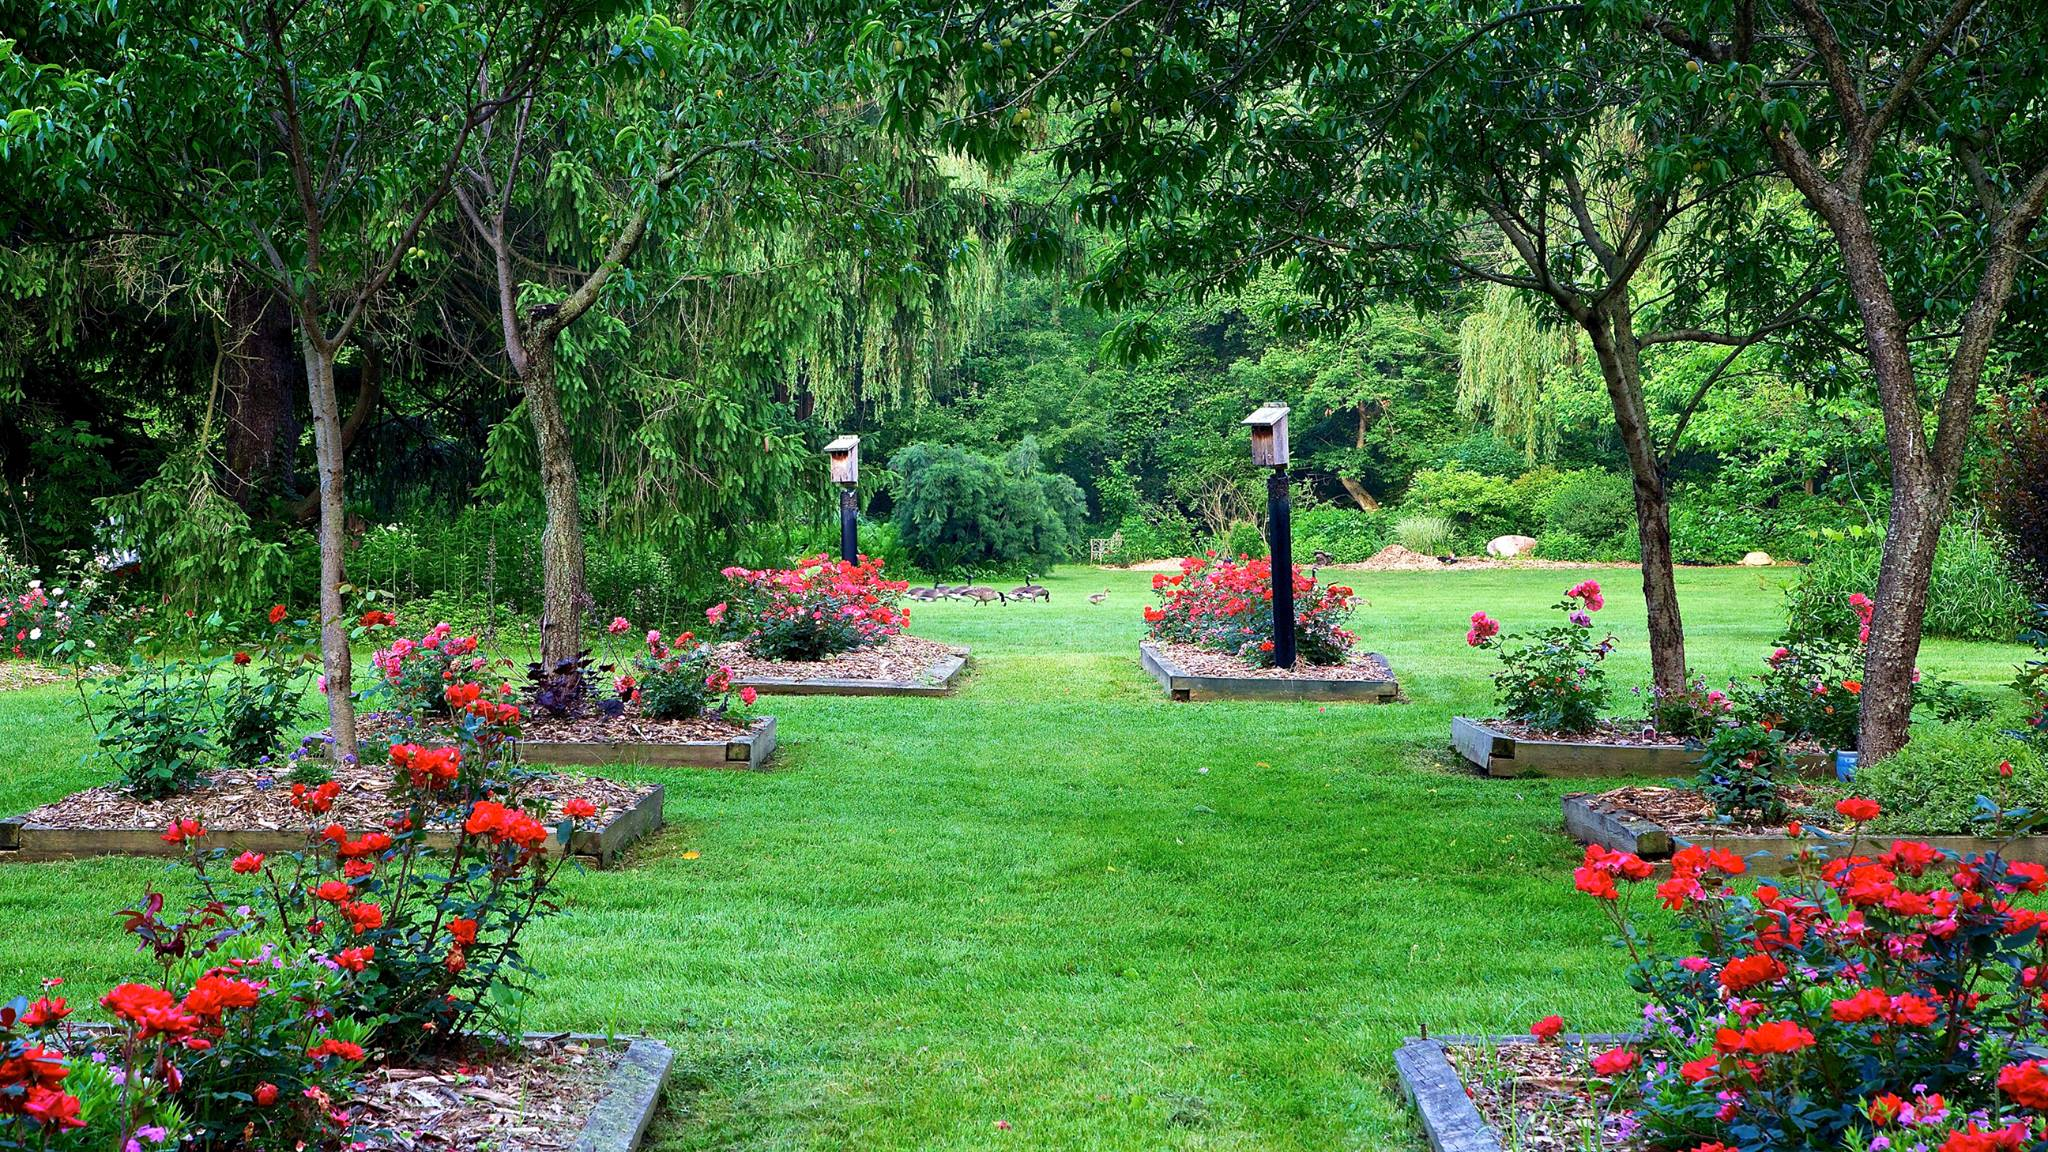 Friendship Botanic Gardens Is A Slice of Paradise In Indiana